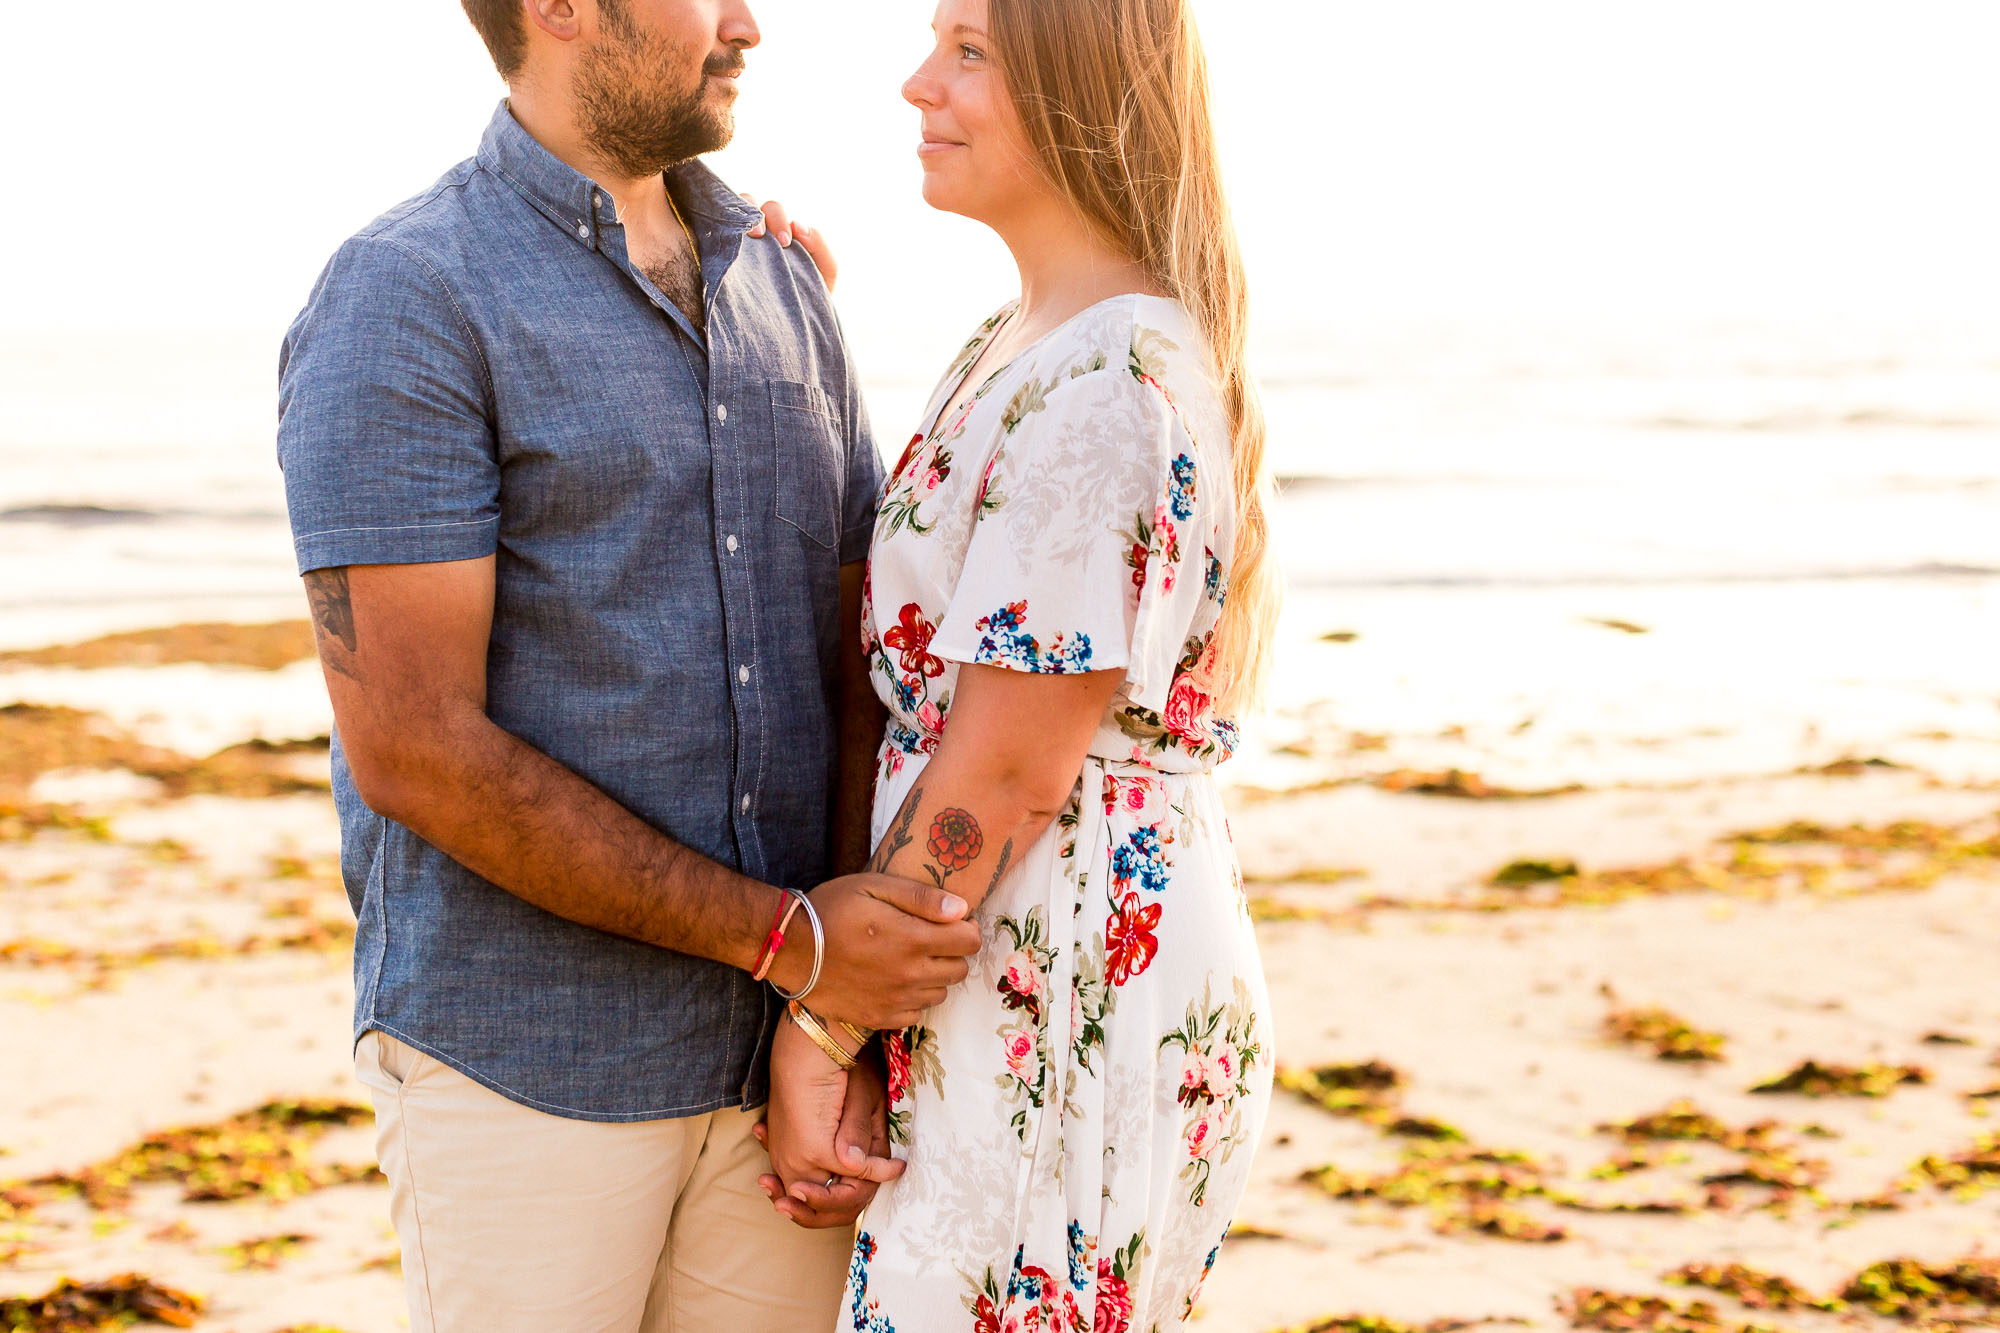 Justine_Puneet_Cardiff_Engagement_Session_191.jpg